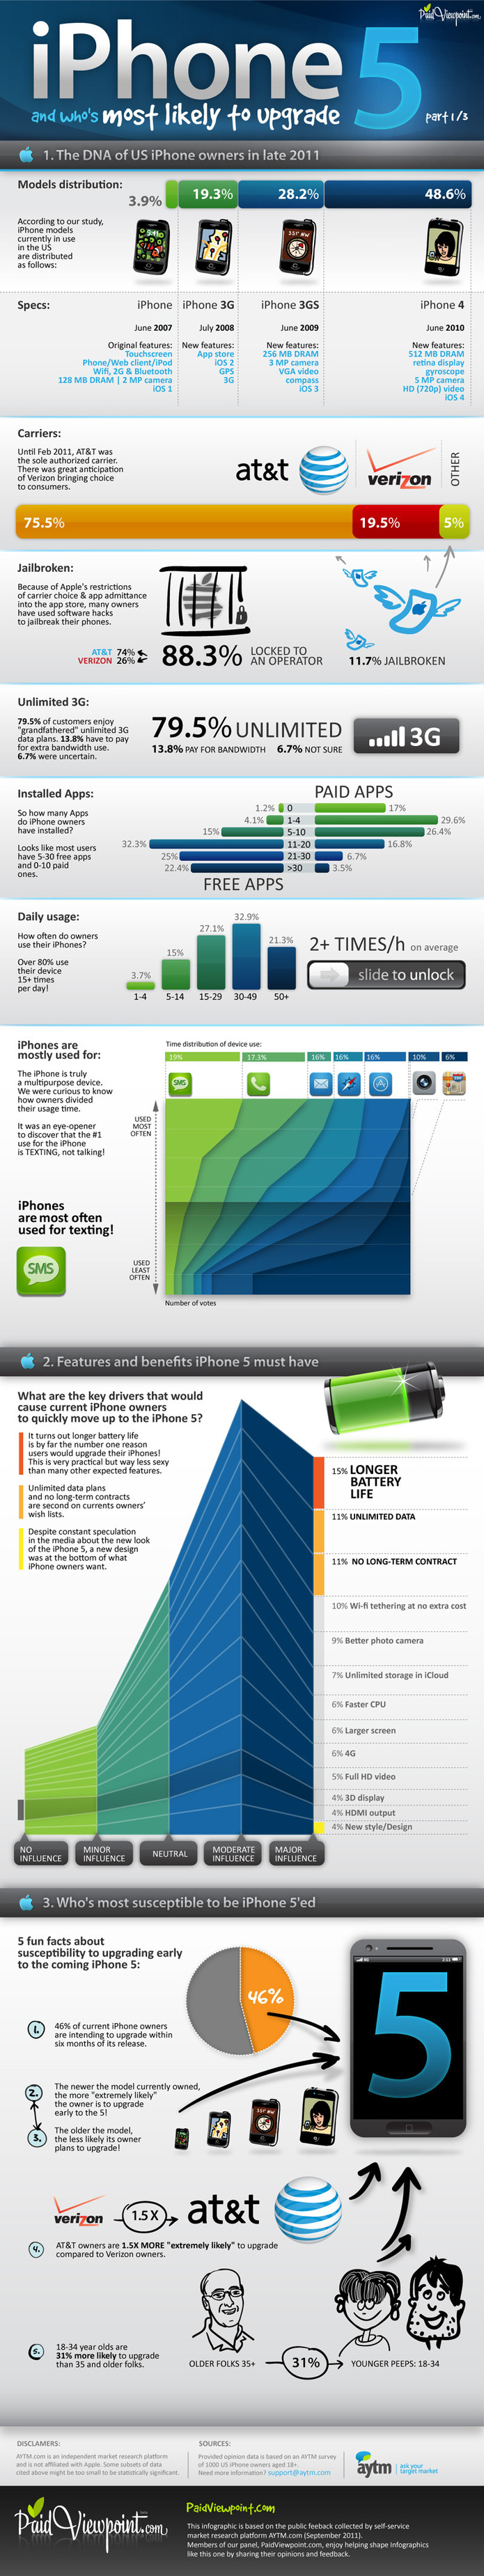 iPhone 5 - Faudra t il l'acheter ? (infographie)